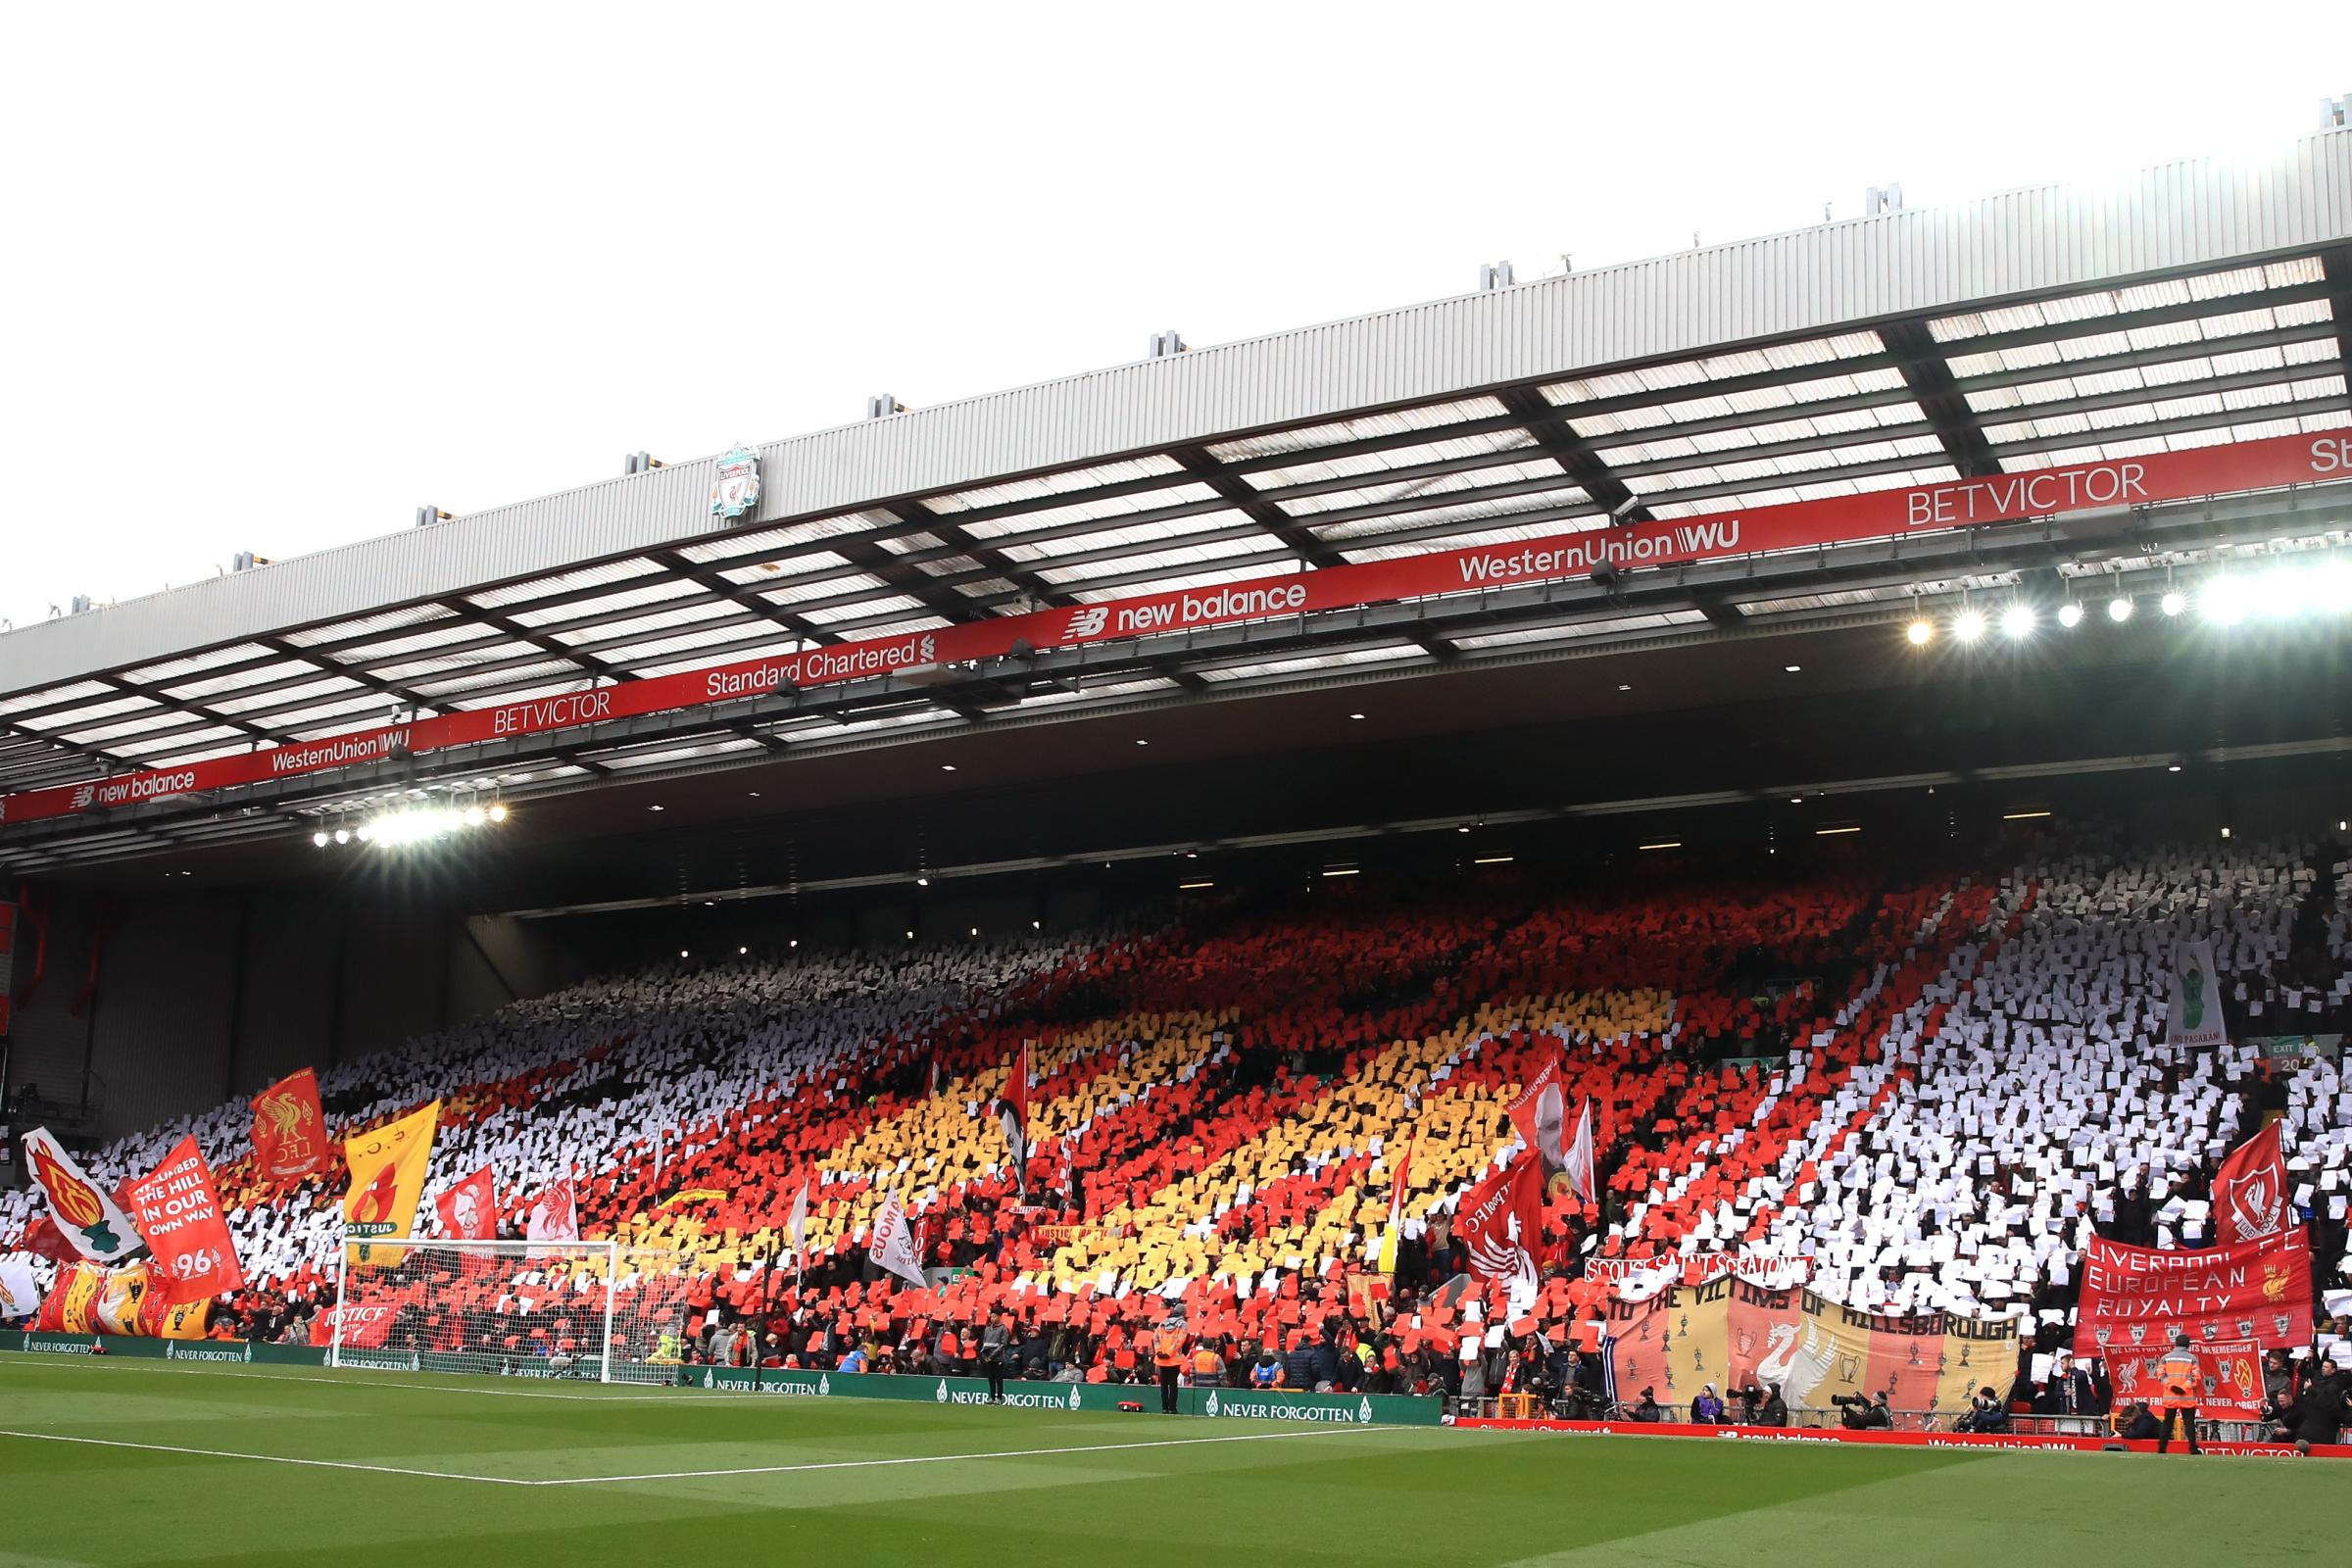 Fans at Anfield commemorate the 30th anniversary of the Hillsborough disaster, where 96 people lost their lives